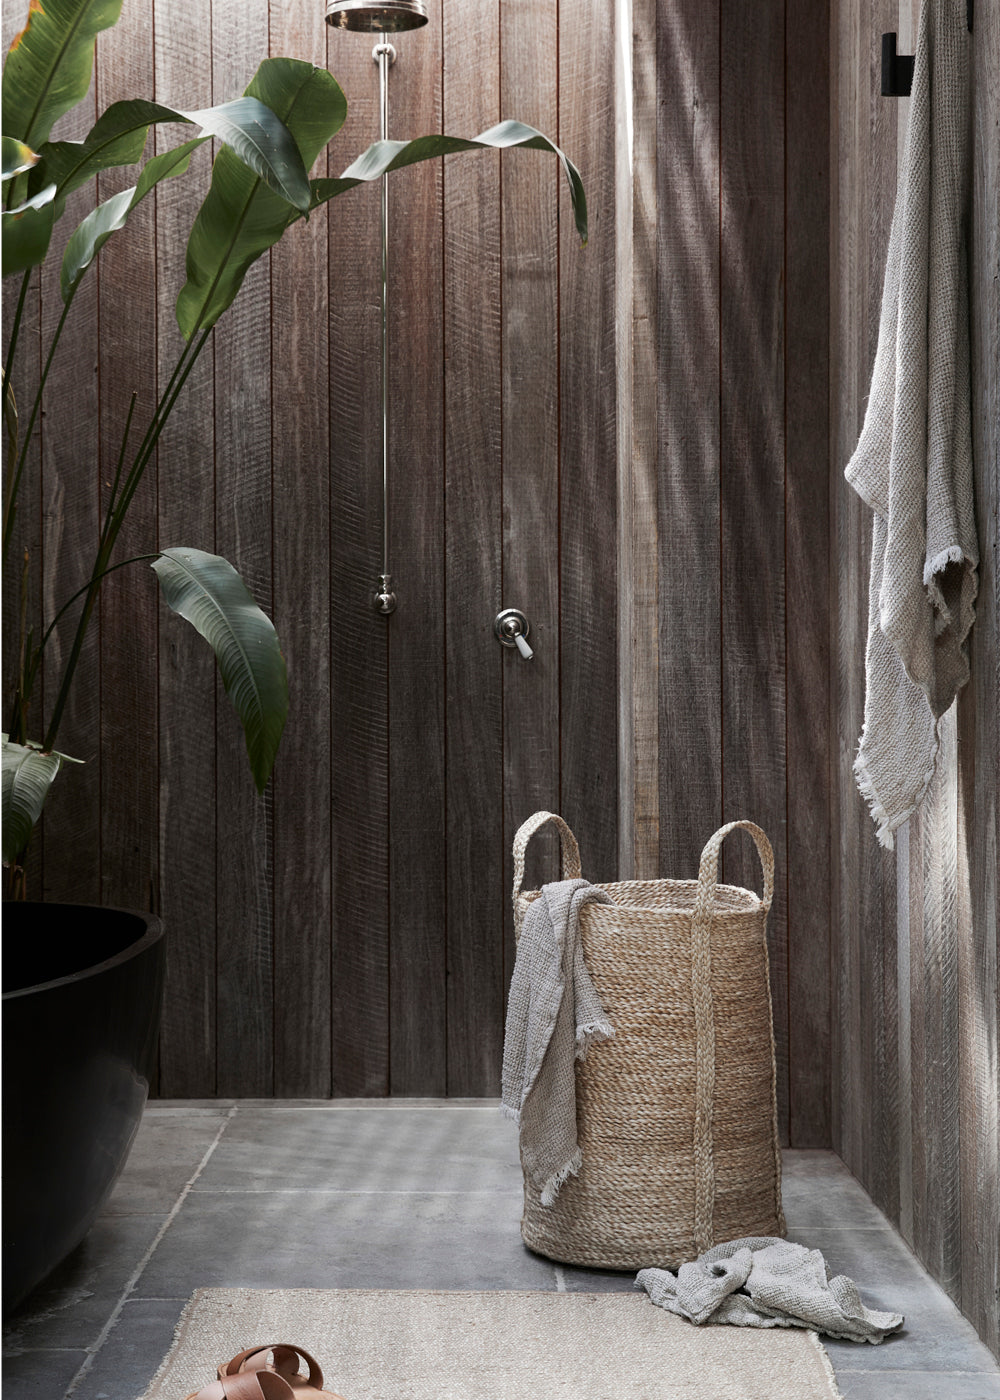 How To Care For Jute Baskets